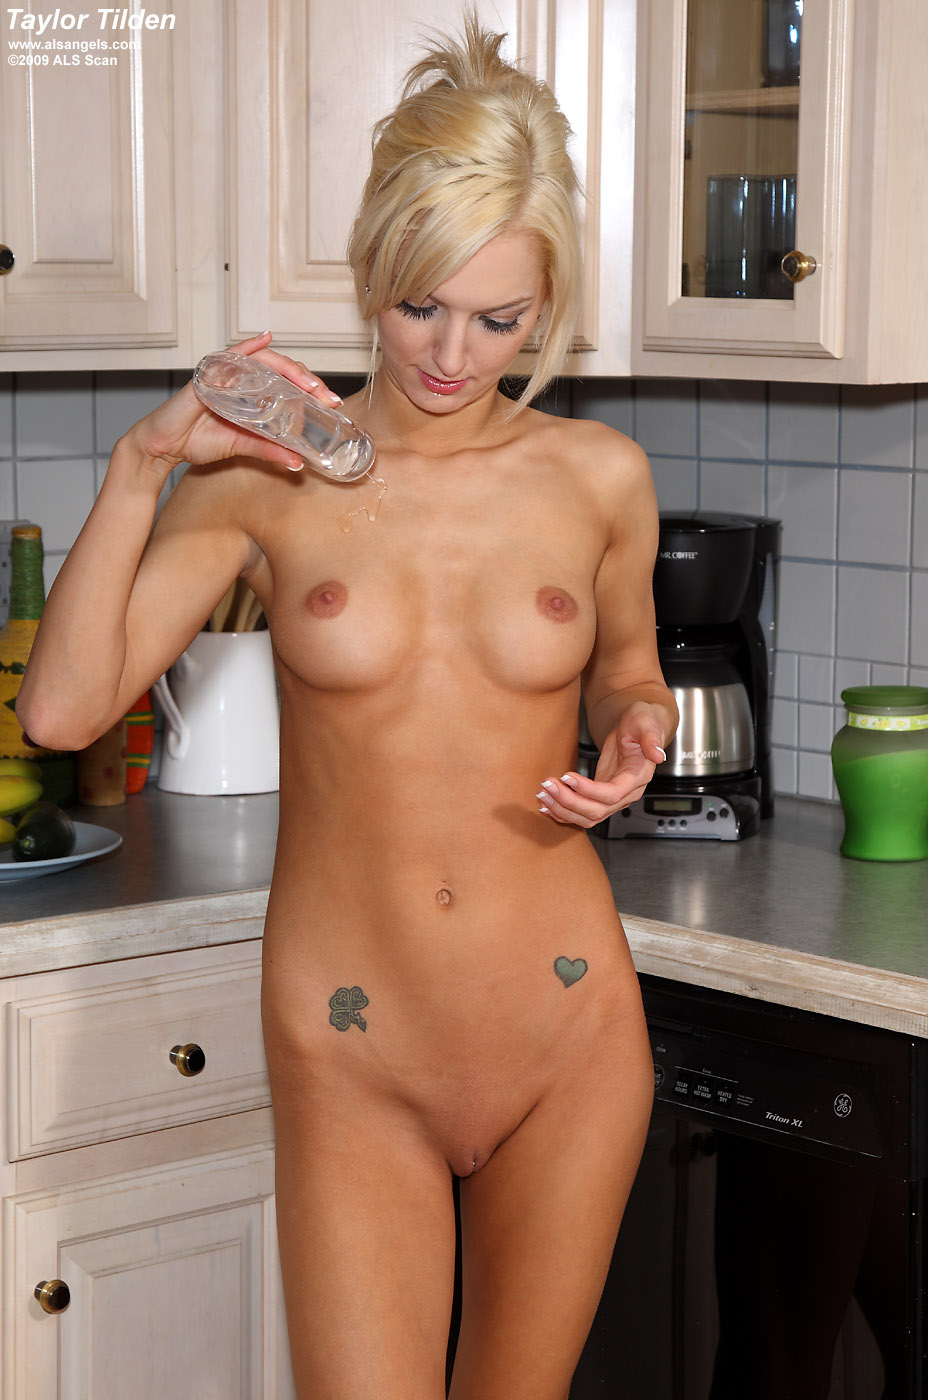 Smiling Nadia Taylor Strips In The Kitchen